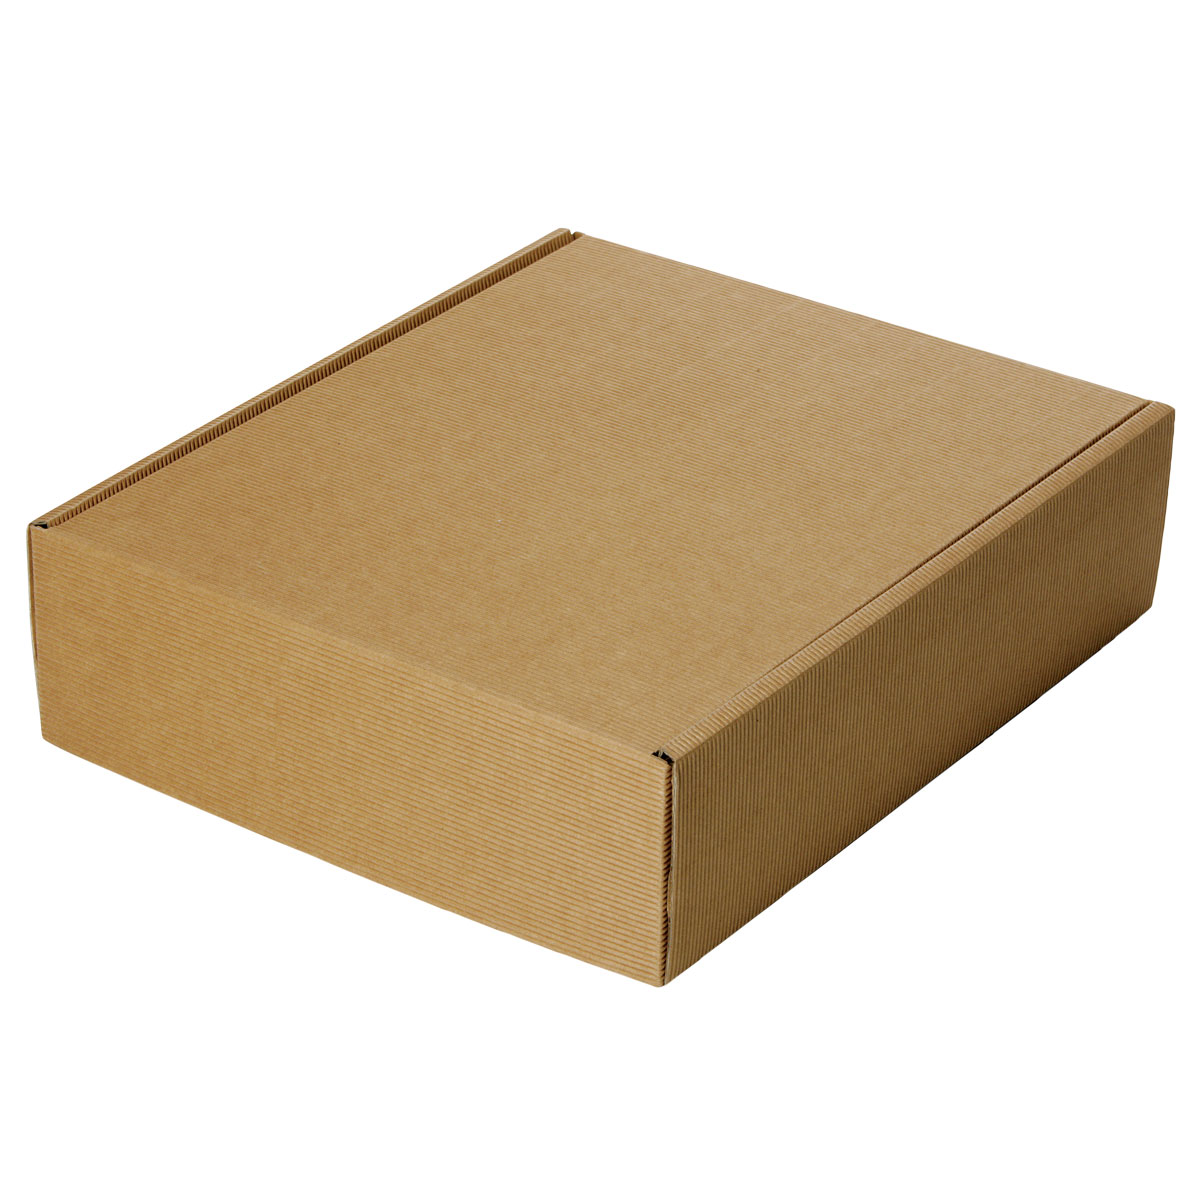 Custom Cardboard Boxes - Best For Transportation and Packaging